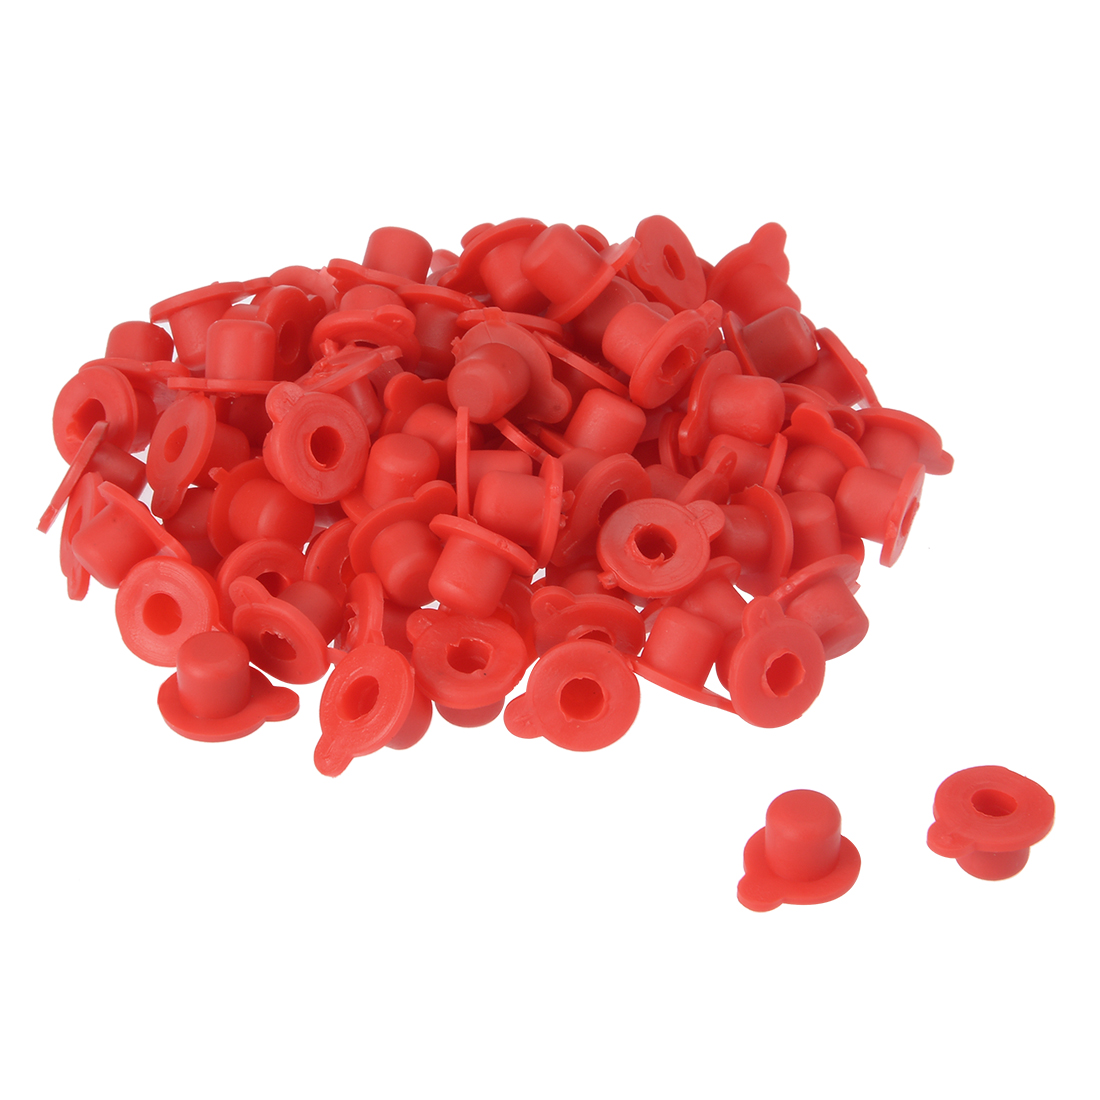 100pcs PVC M8 Round Head Threaded Hole Stoppers Waterproof Tapered Caps Red